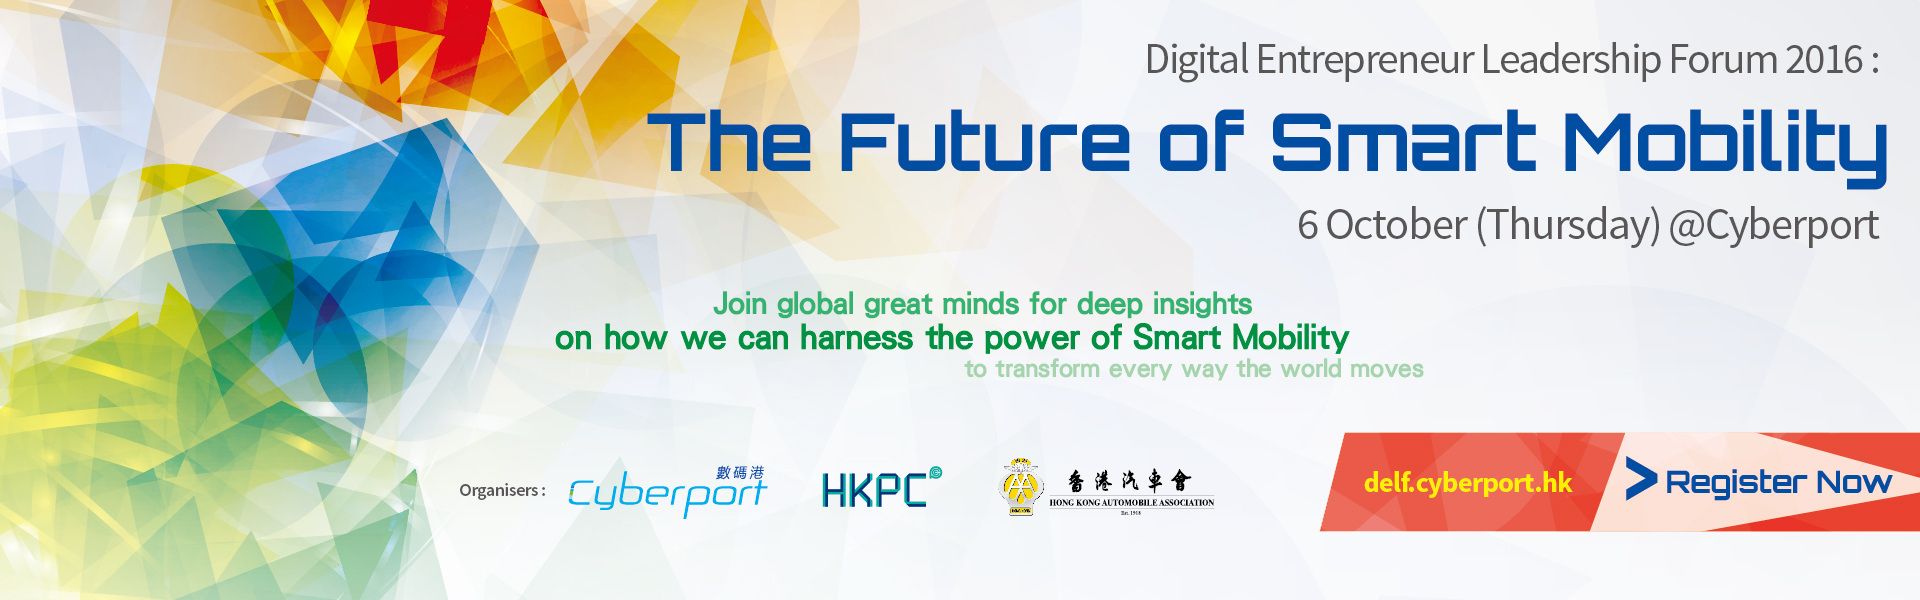 Join global great minds for deep insights on how we can harness the power of Smart Mobility to transform every way the world moves